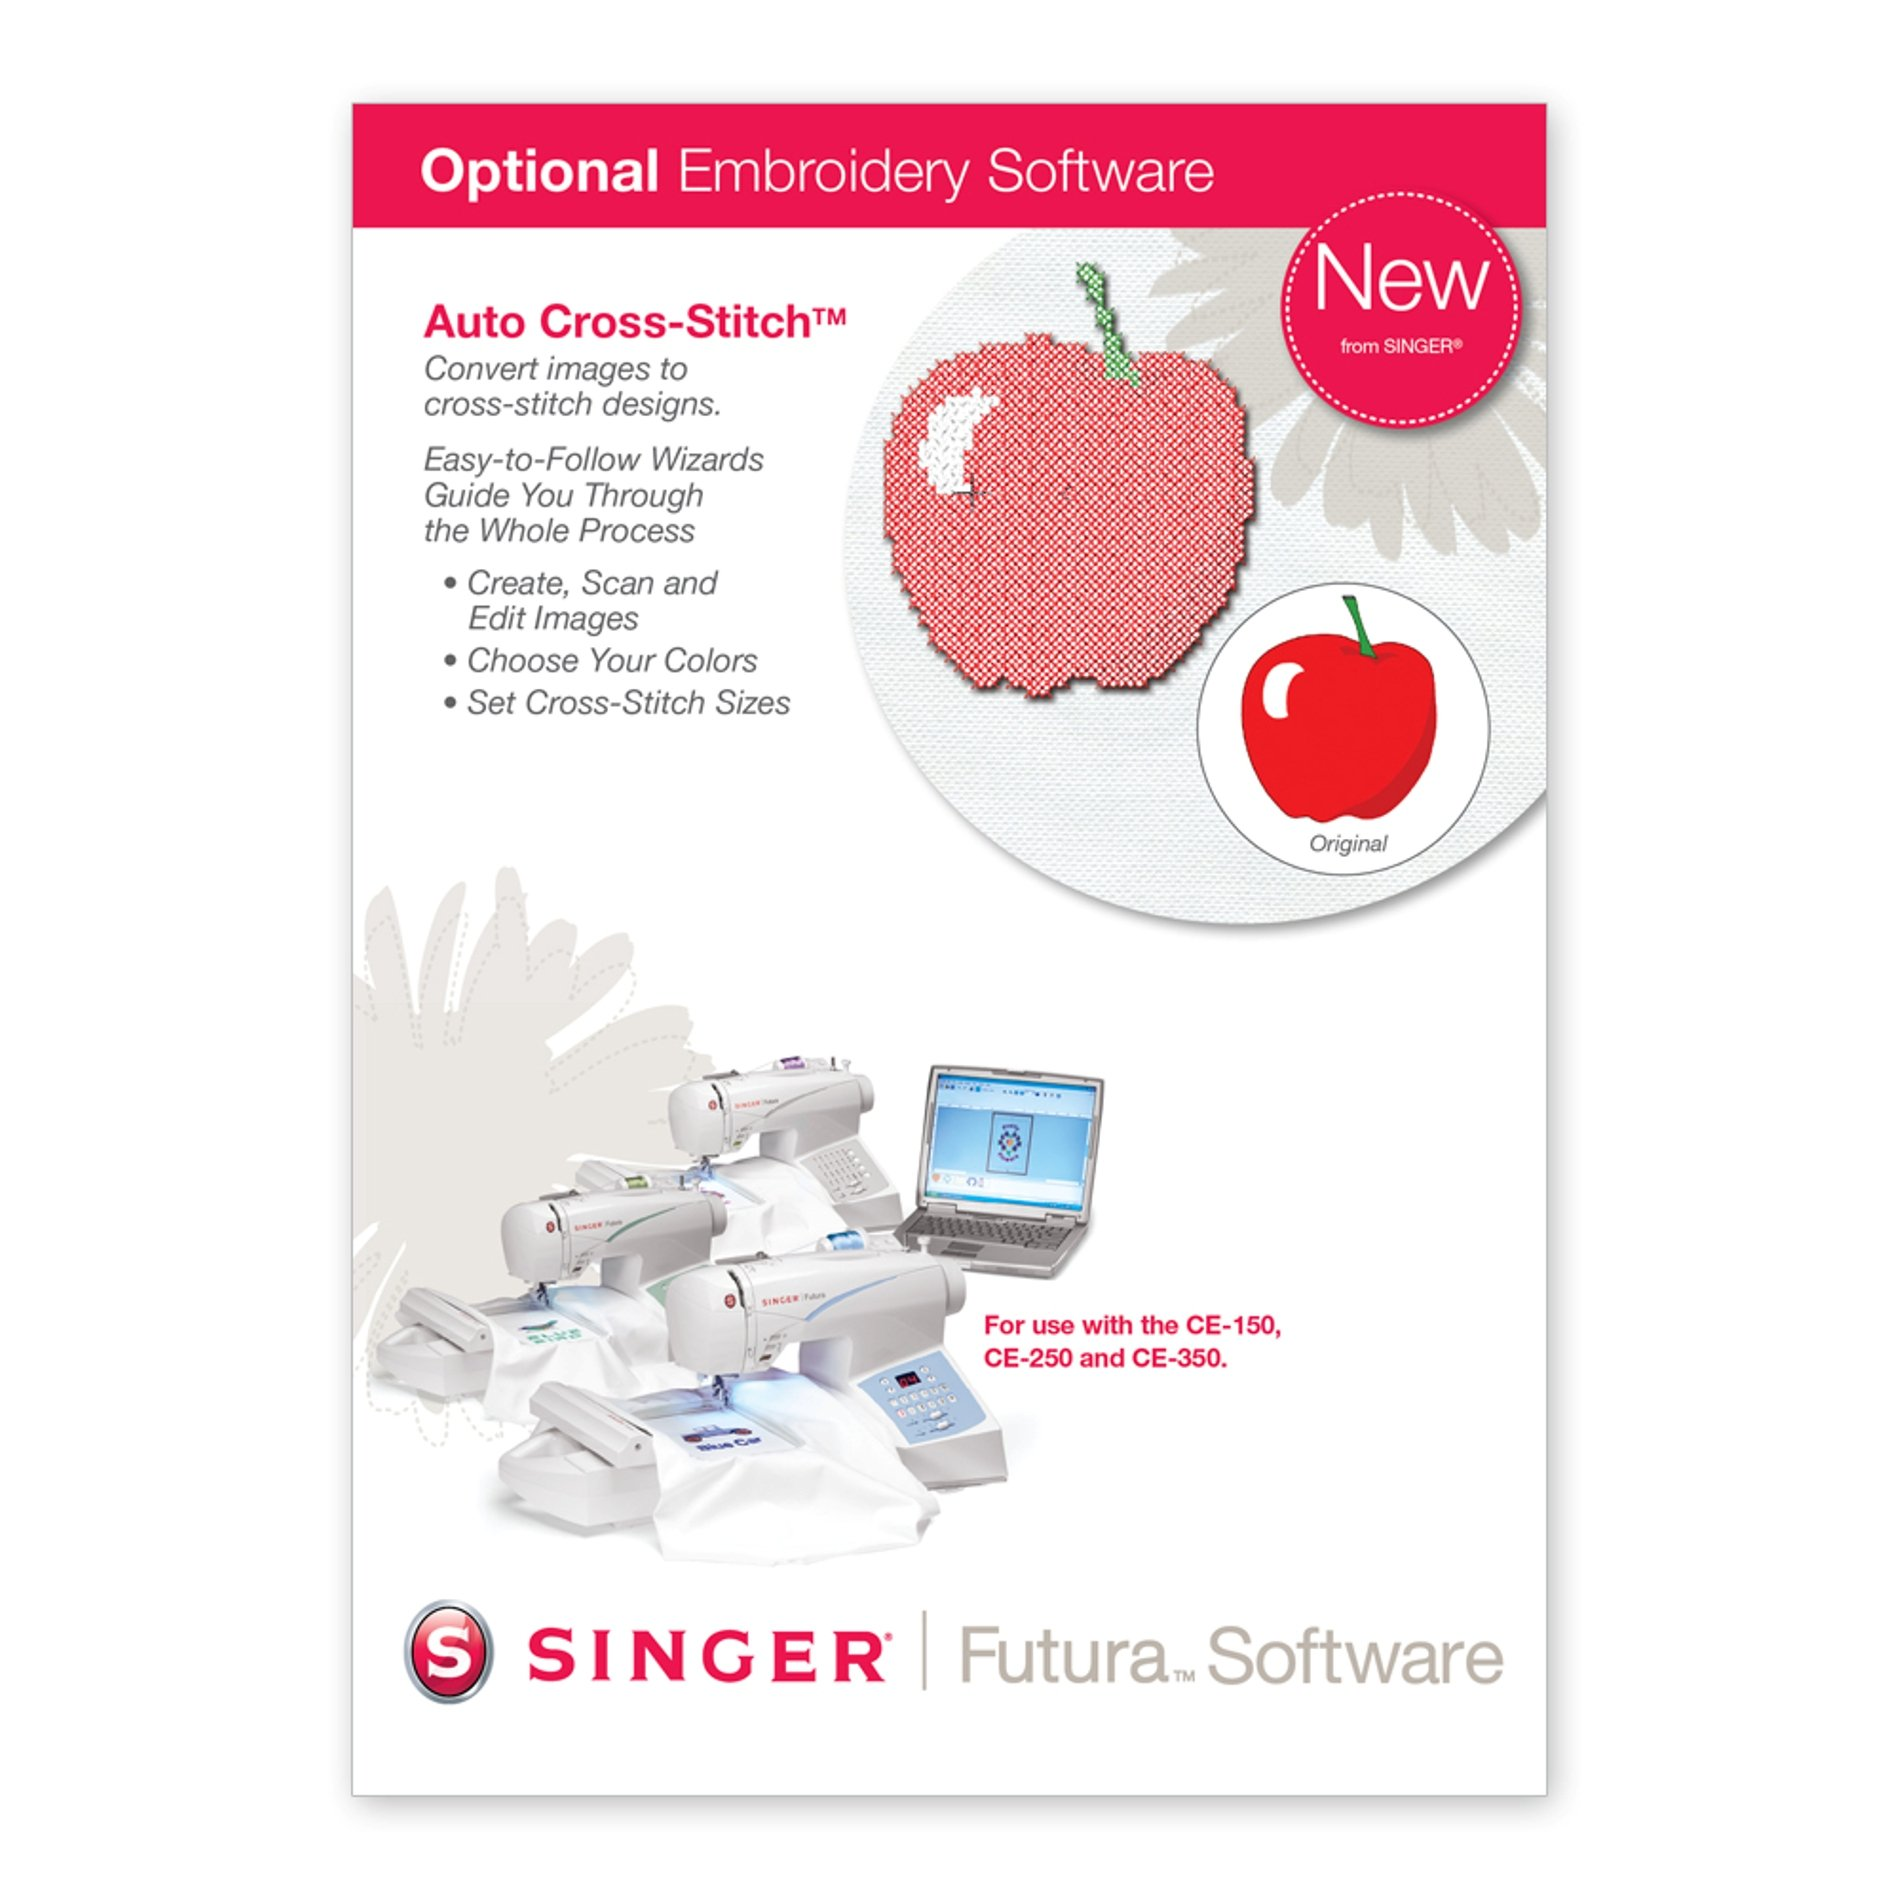 SINGER Futura Auto Cross-Stitch Software for CE-150 and CE-250 by SINGER